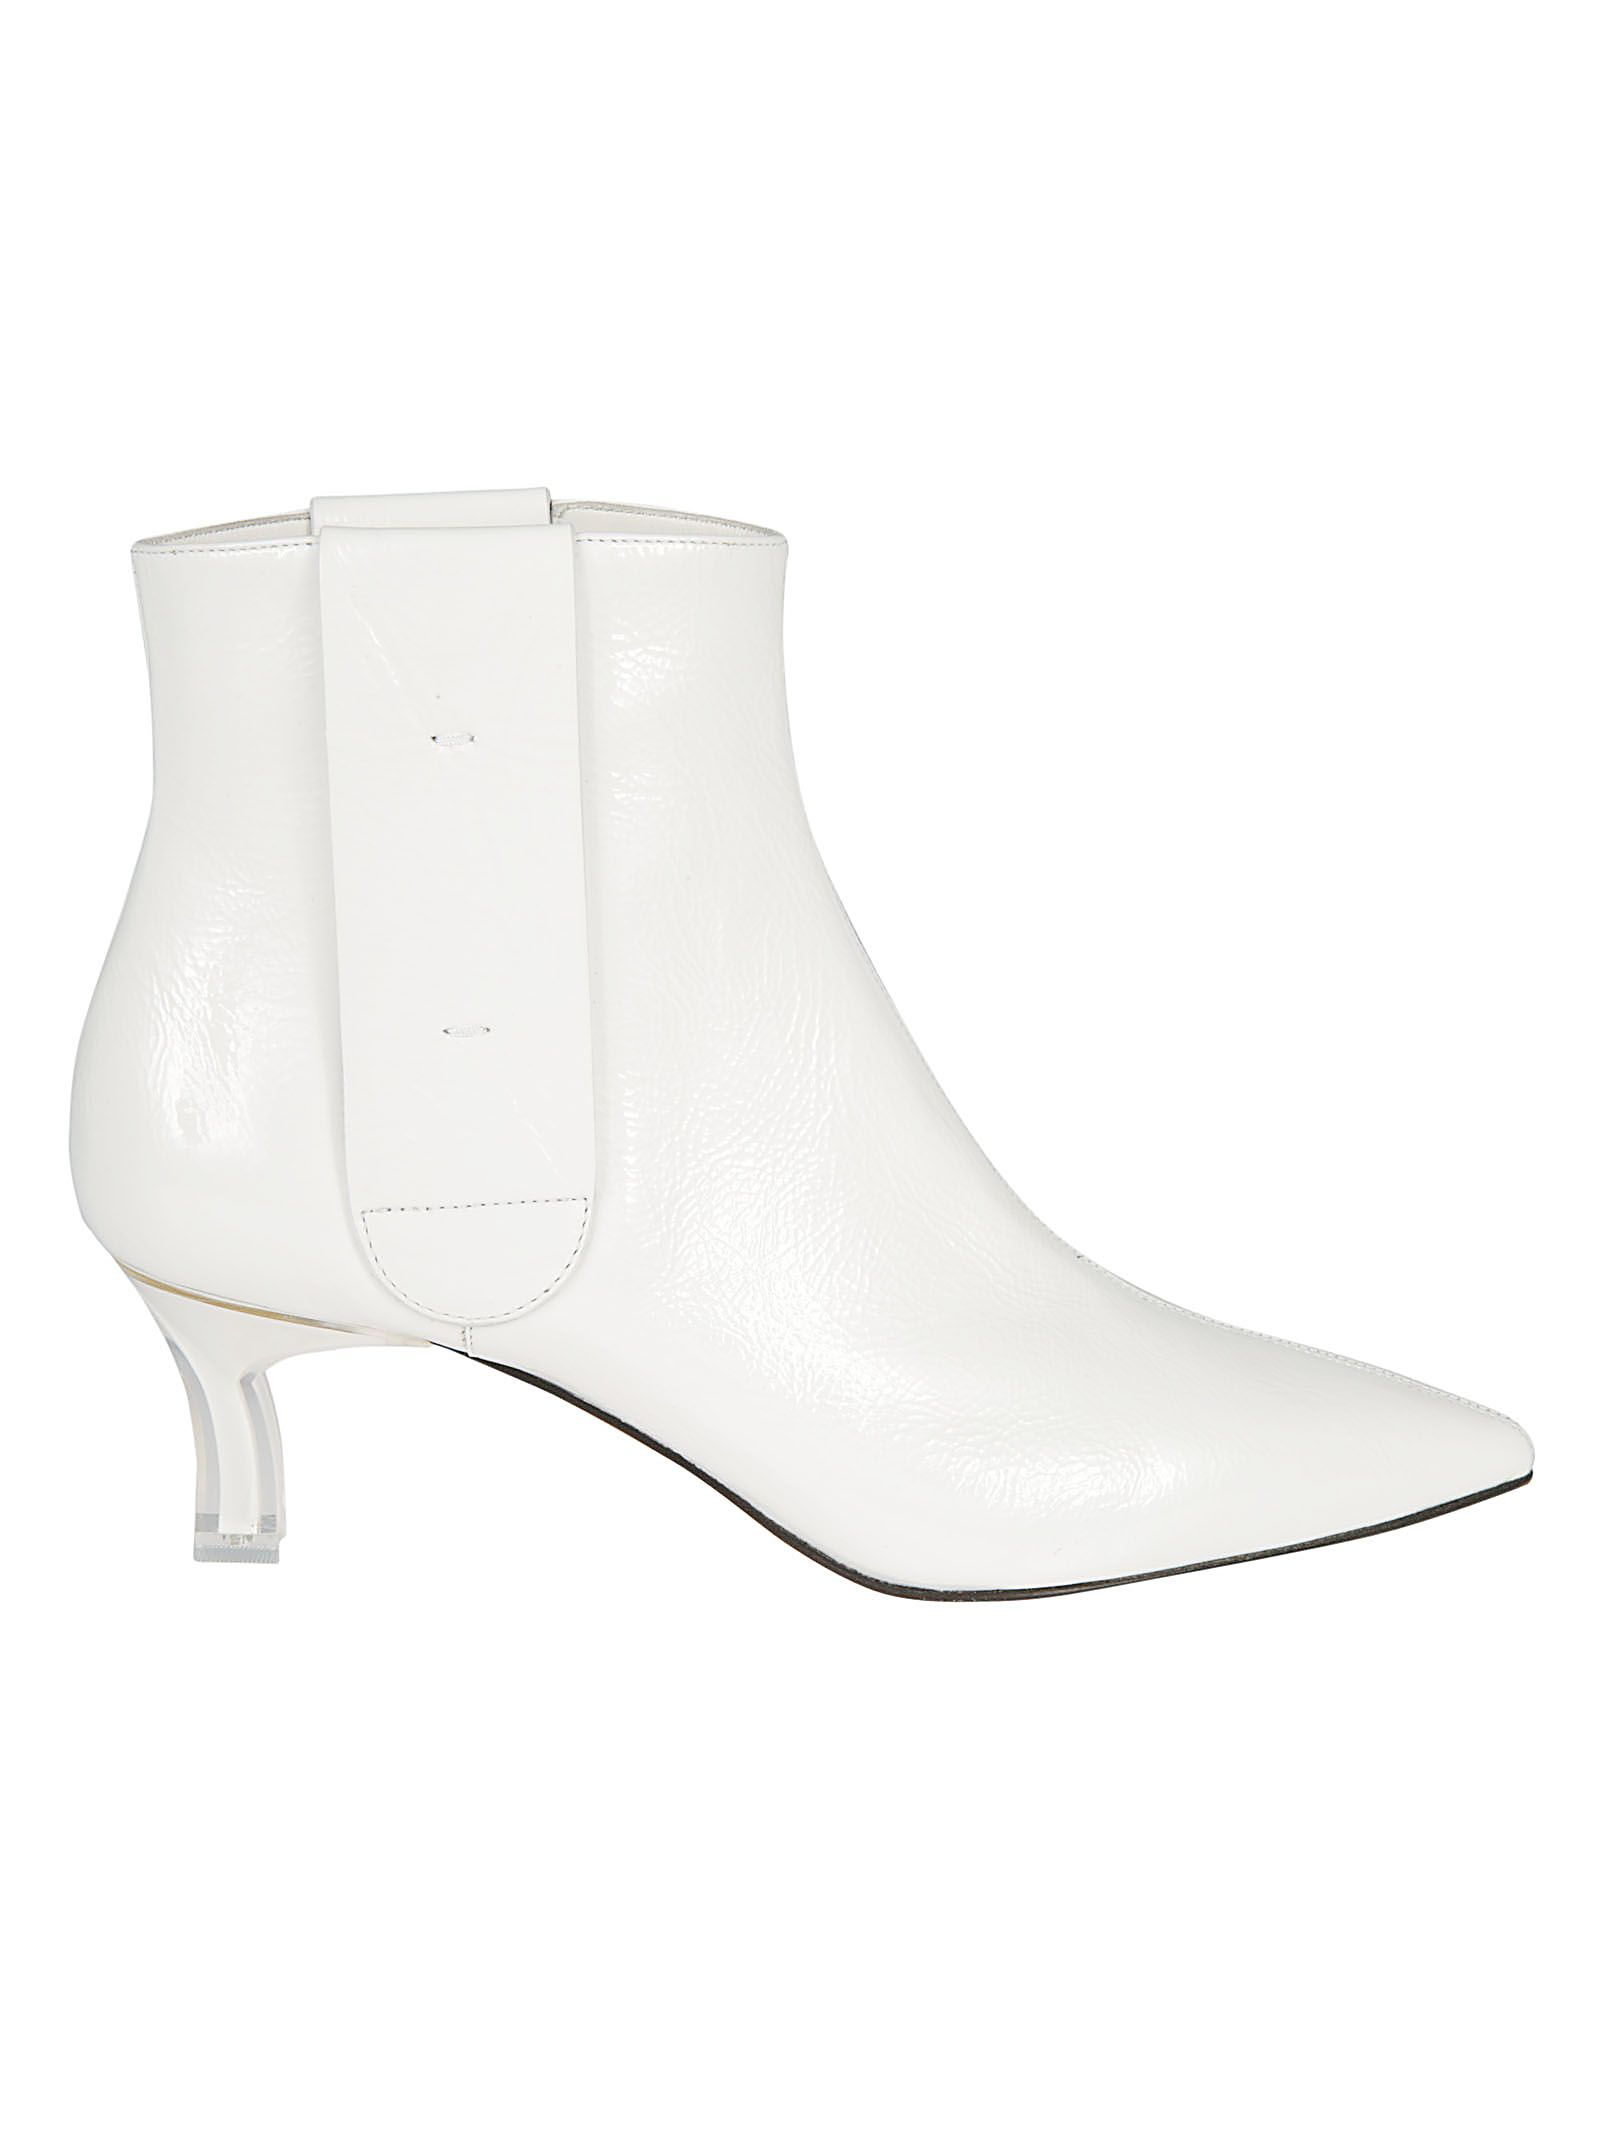 Plexi Blade Heel Ankle Boots, Bianco from CASADEI